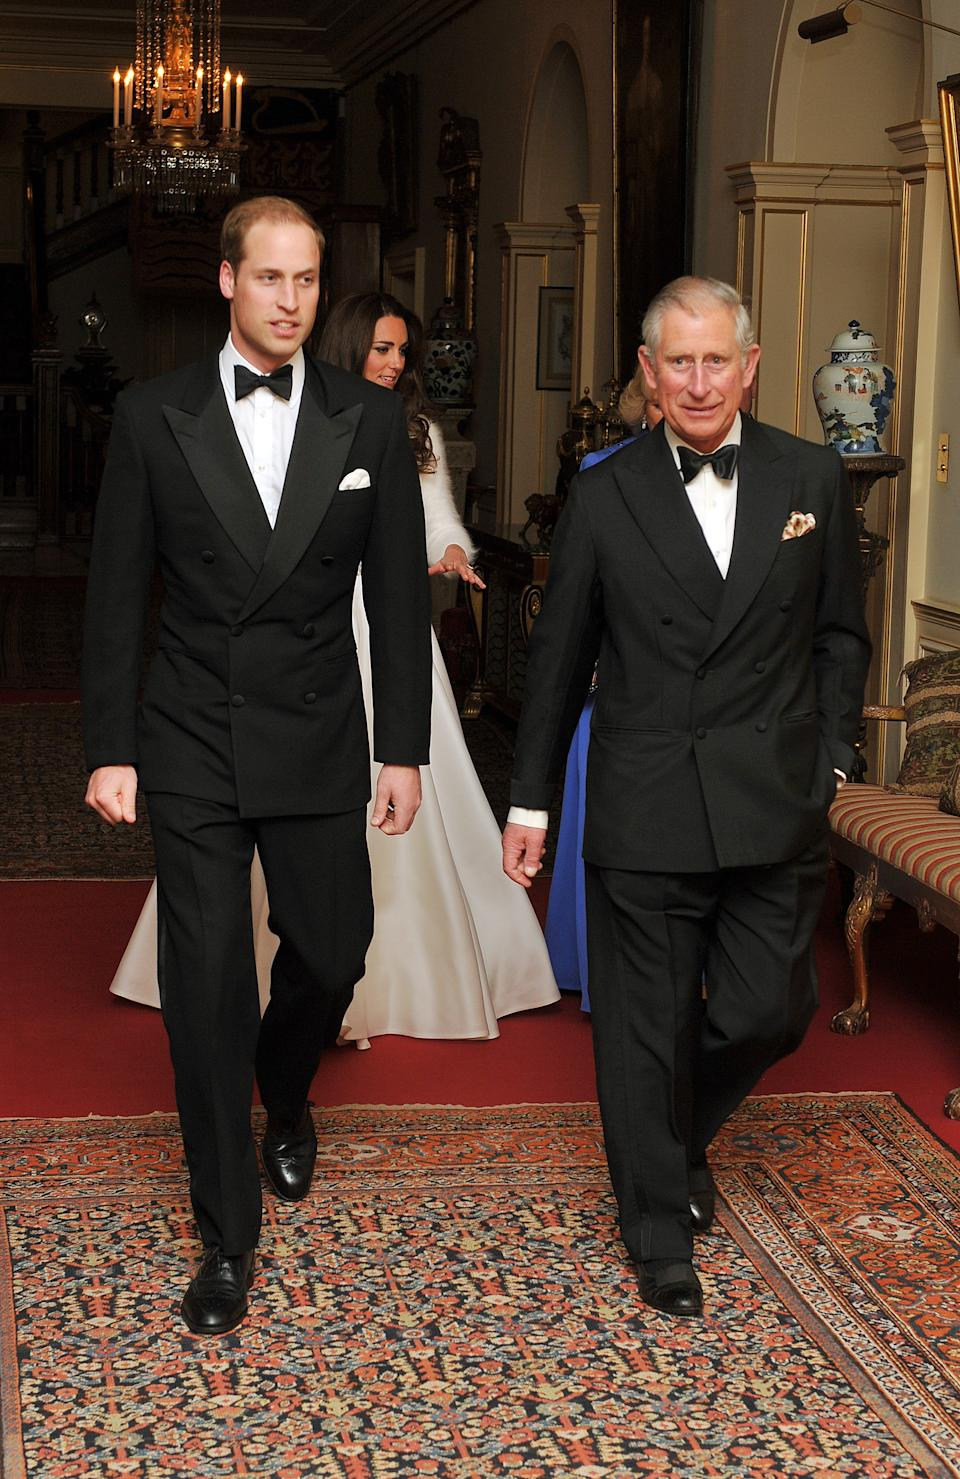 Prince Charles and  Prince William followed by the Duchess of Cambridge and the Duchess of Cornwall,